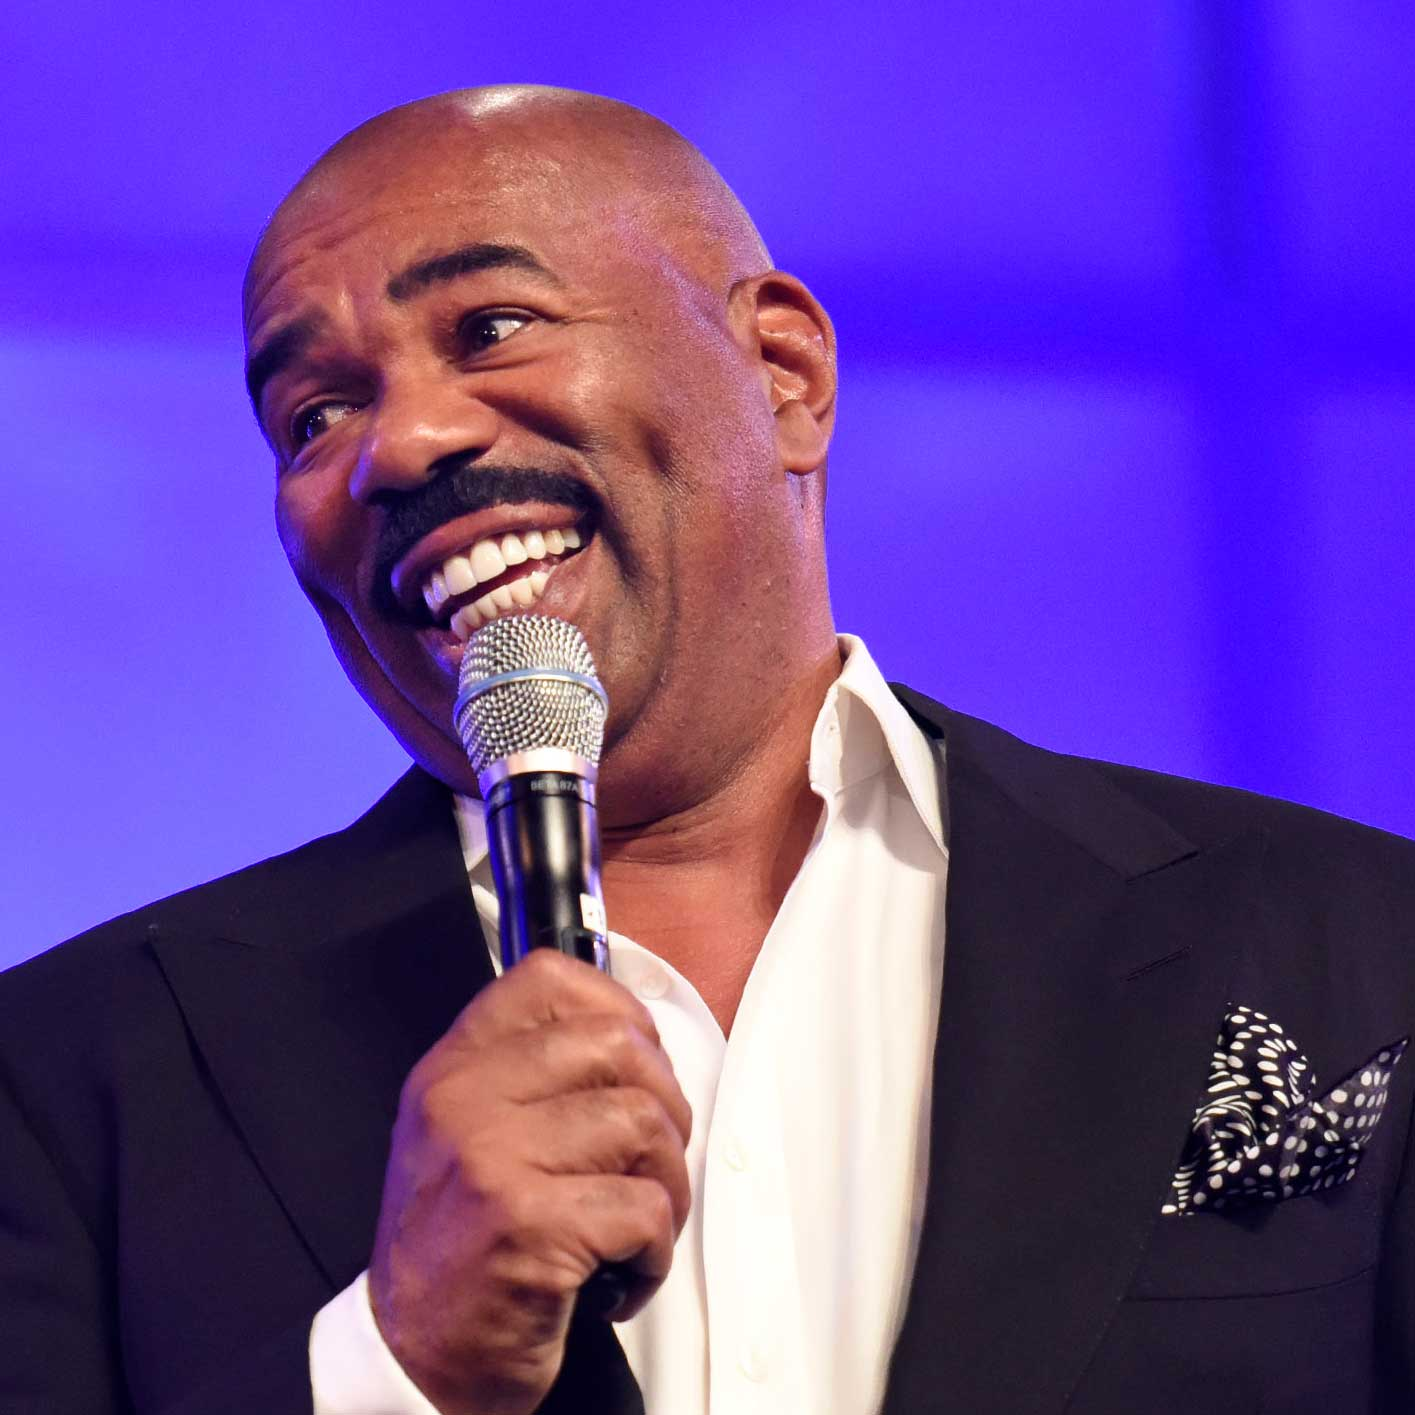 Entertainer Steve Harvey speaking into a microphone